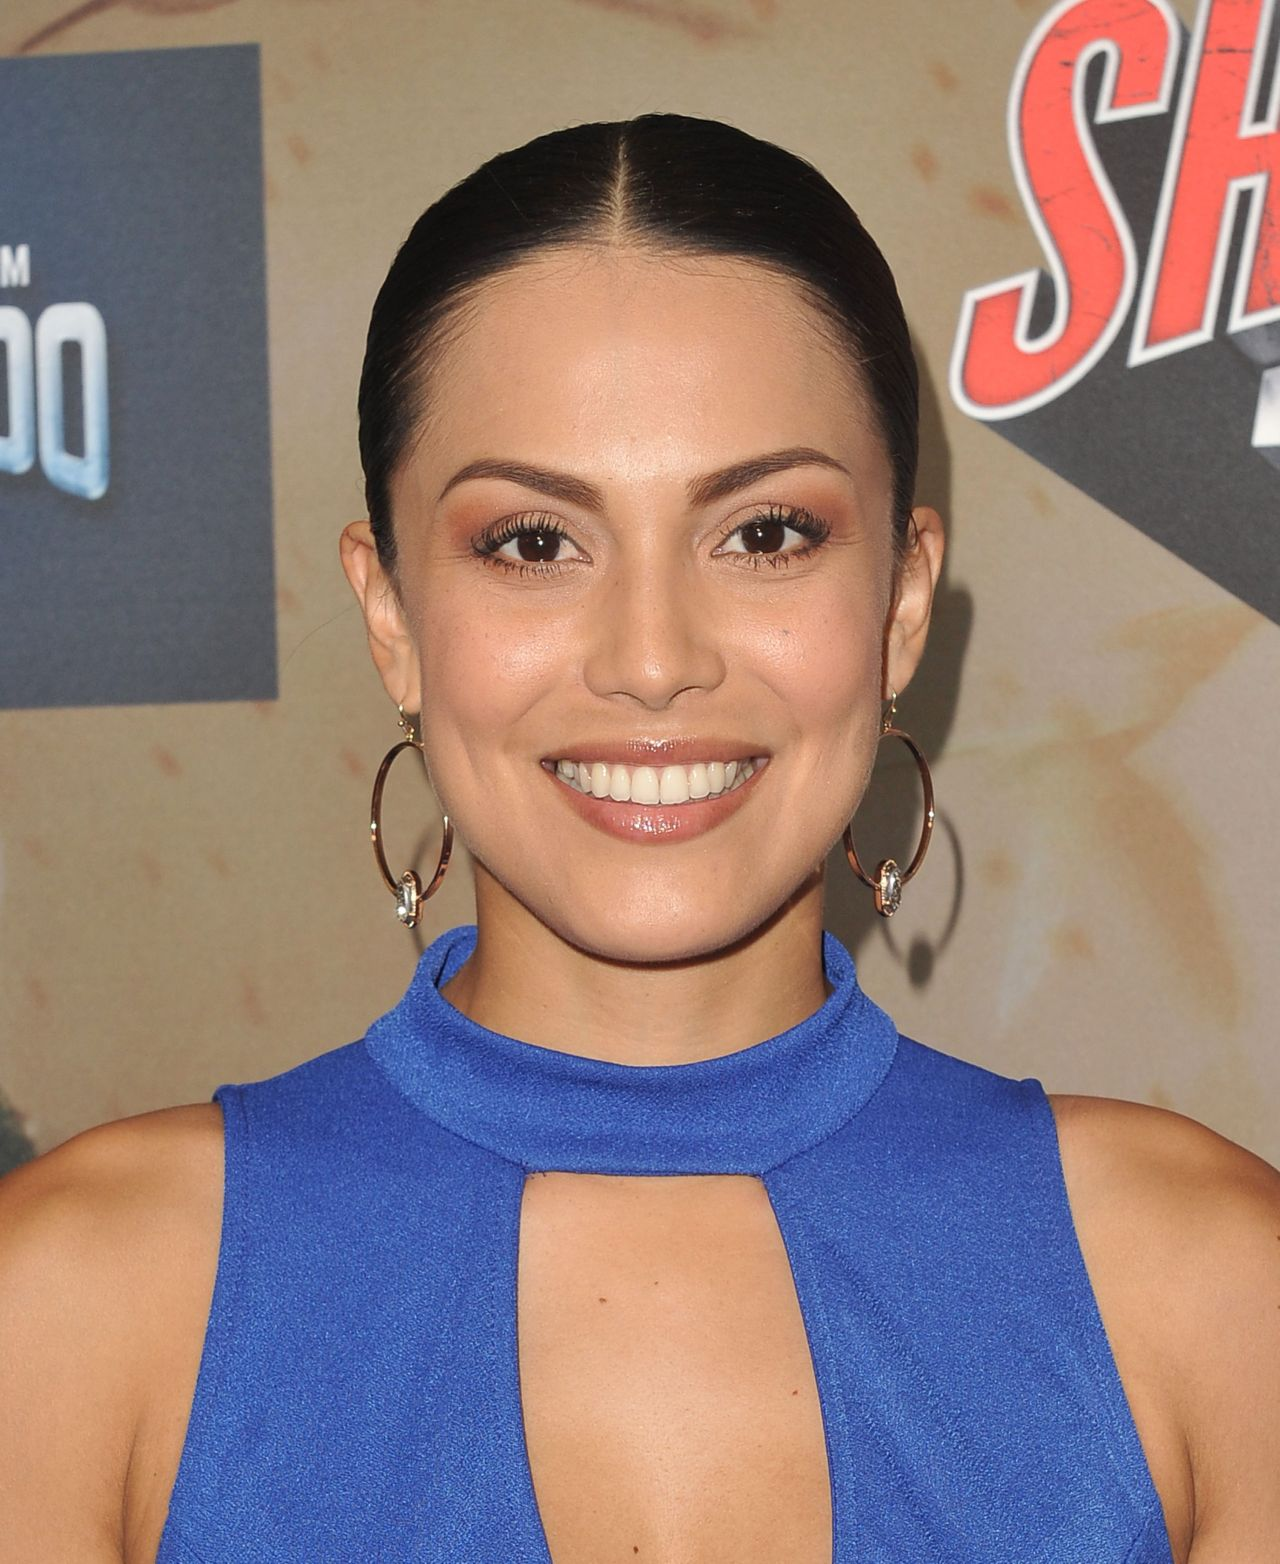 Raquel Pomplun - The Last Sharknado: Its About Time